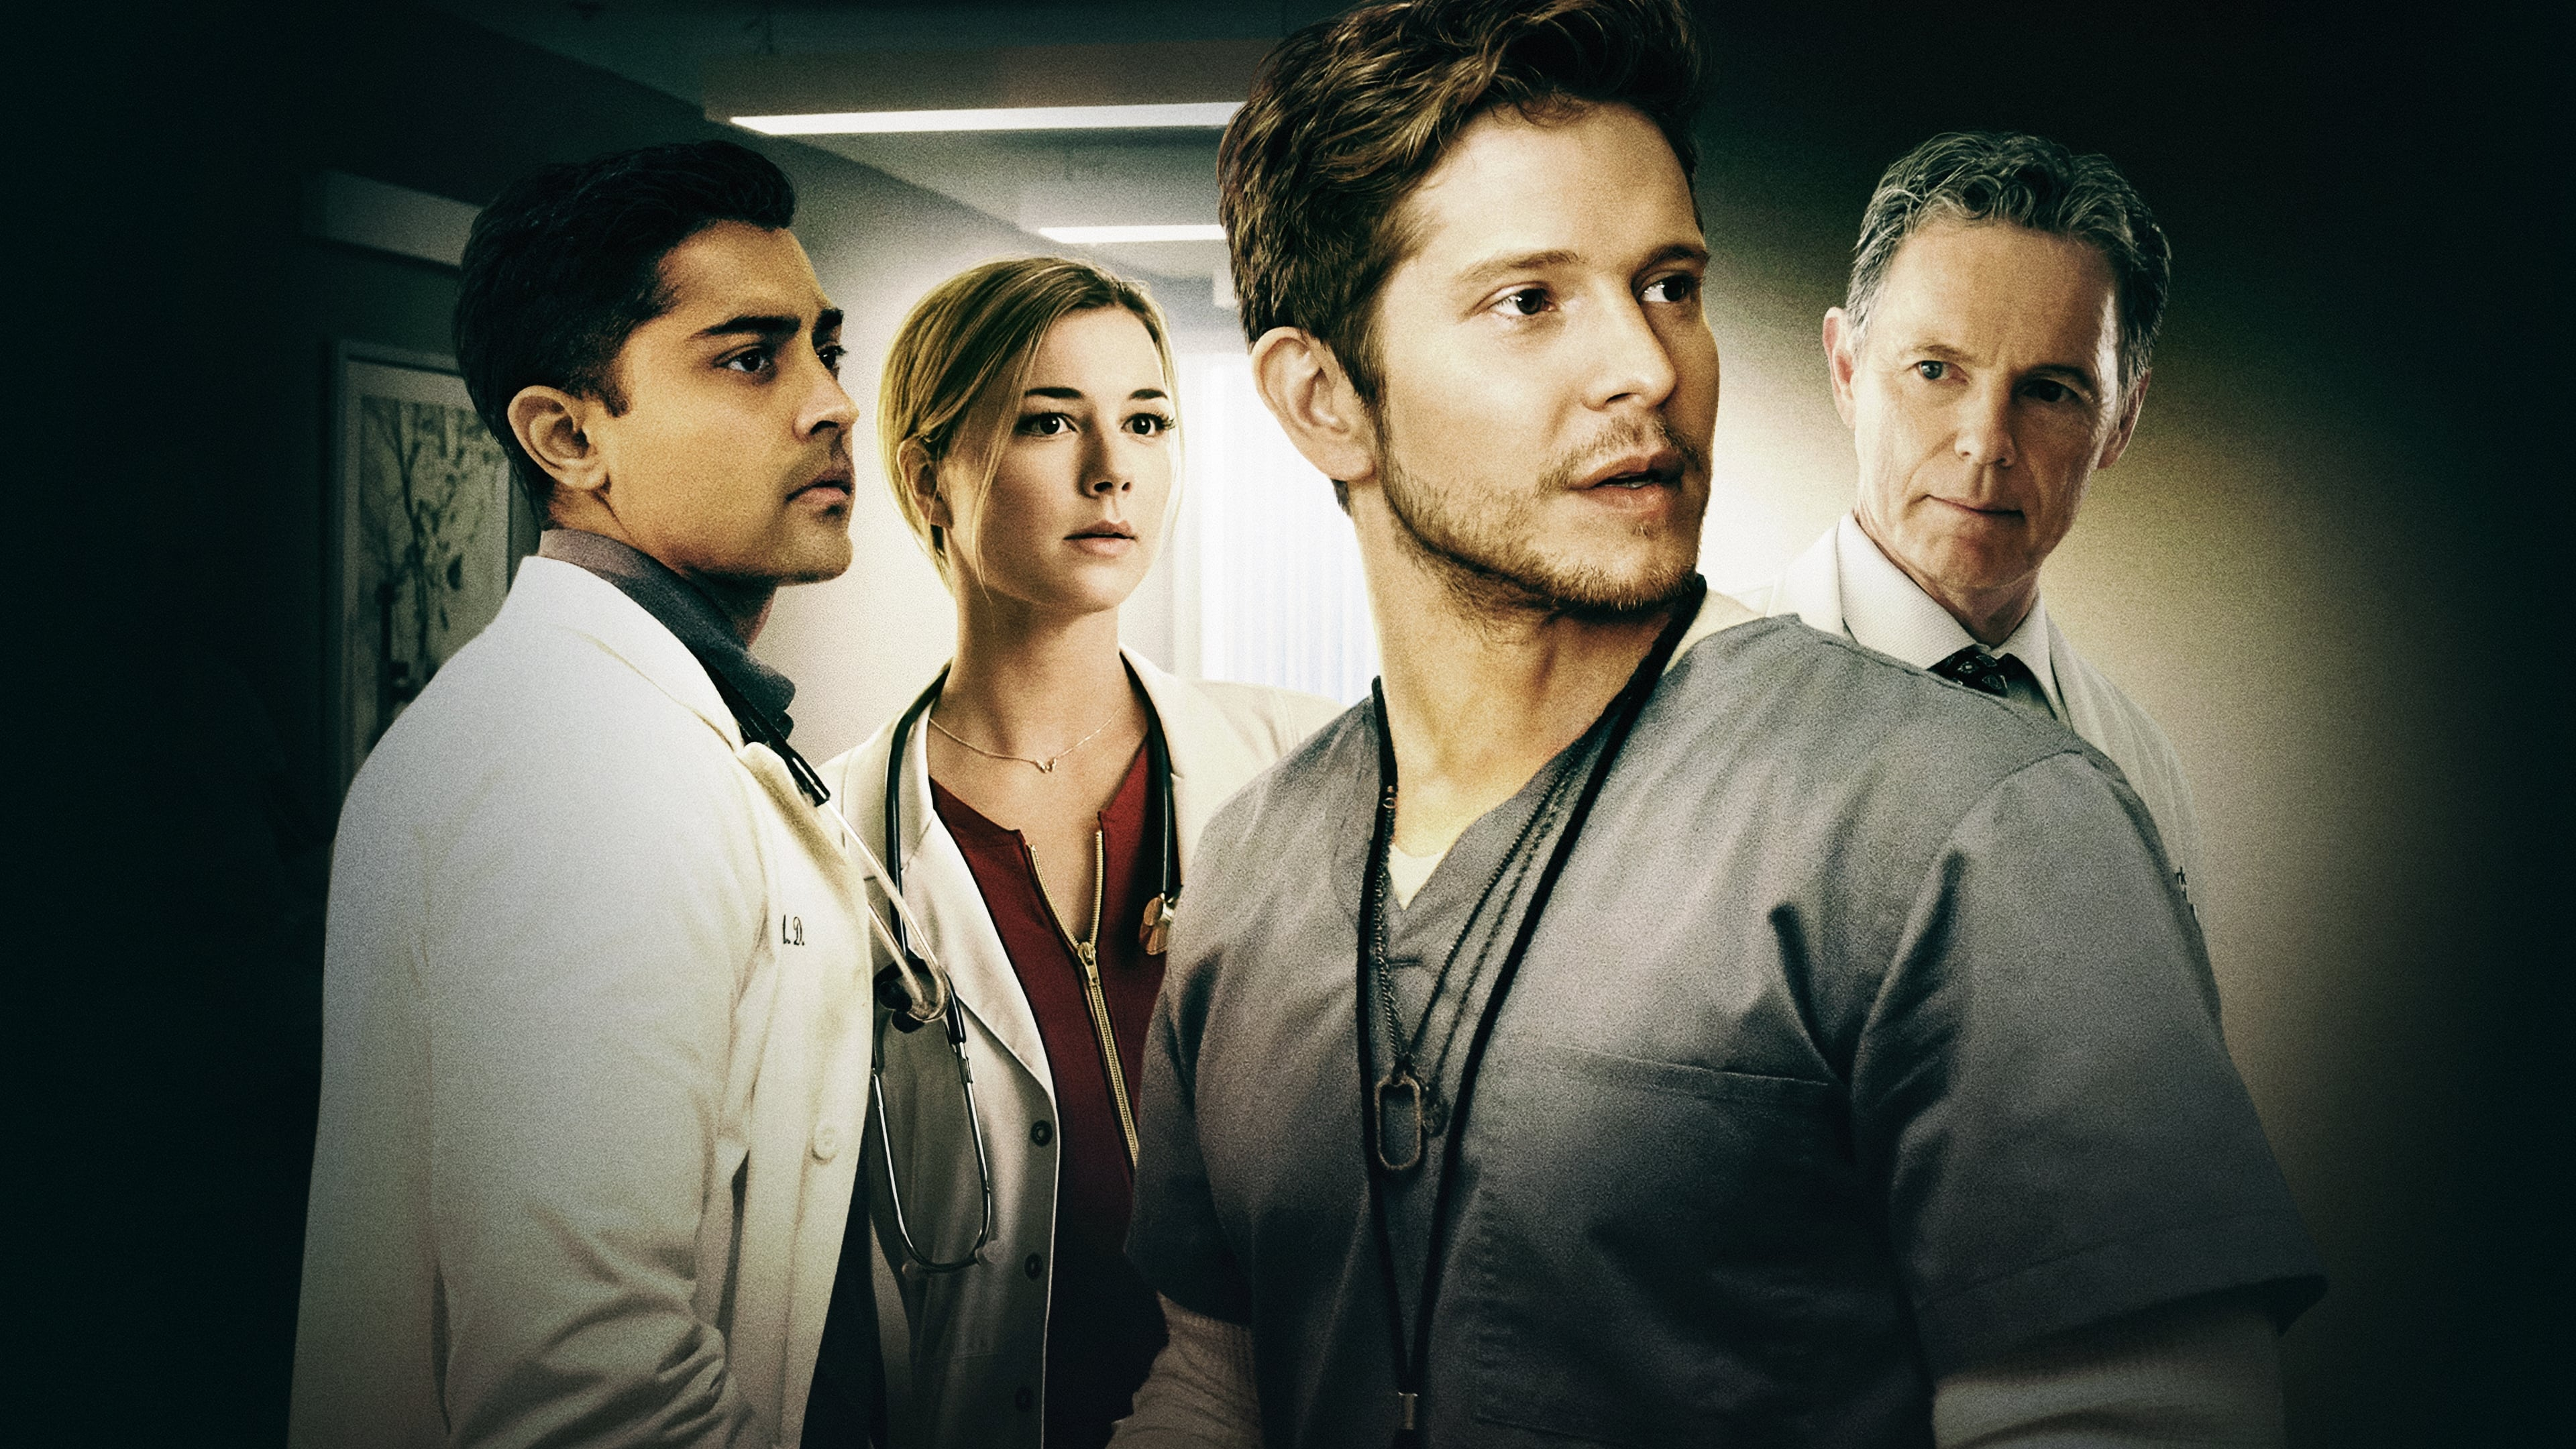 The Resident - Season 3 Episode 4